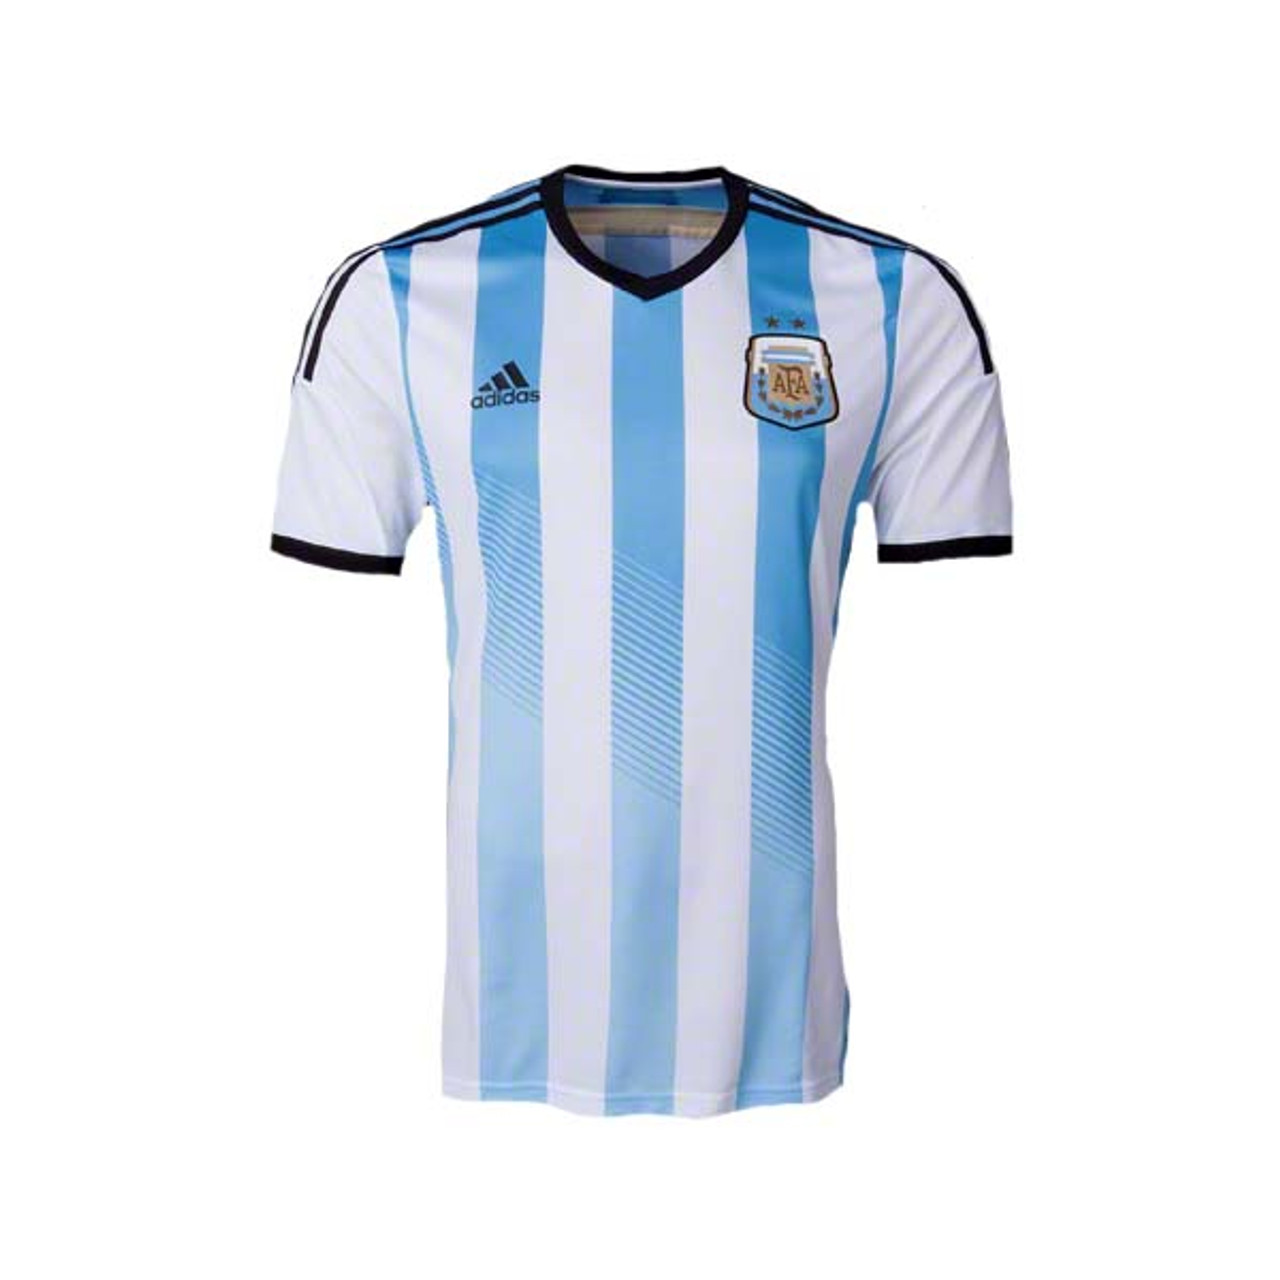 ADIDAS ARGENTINA 2014 AUTHENTIC HOME JERSEY